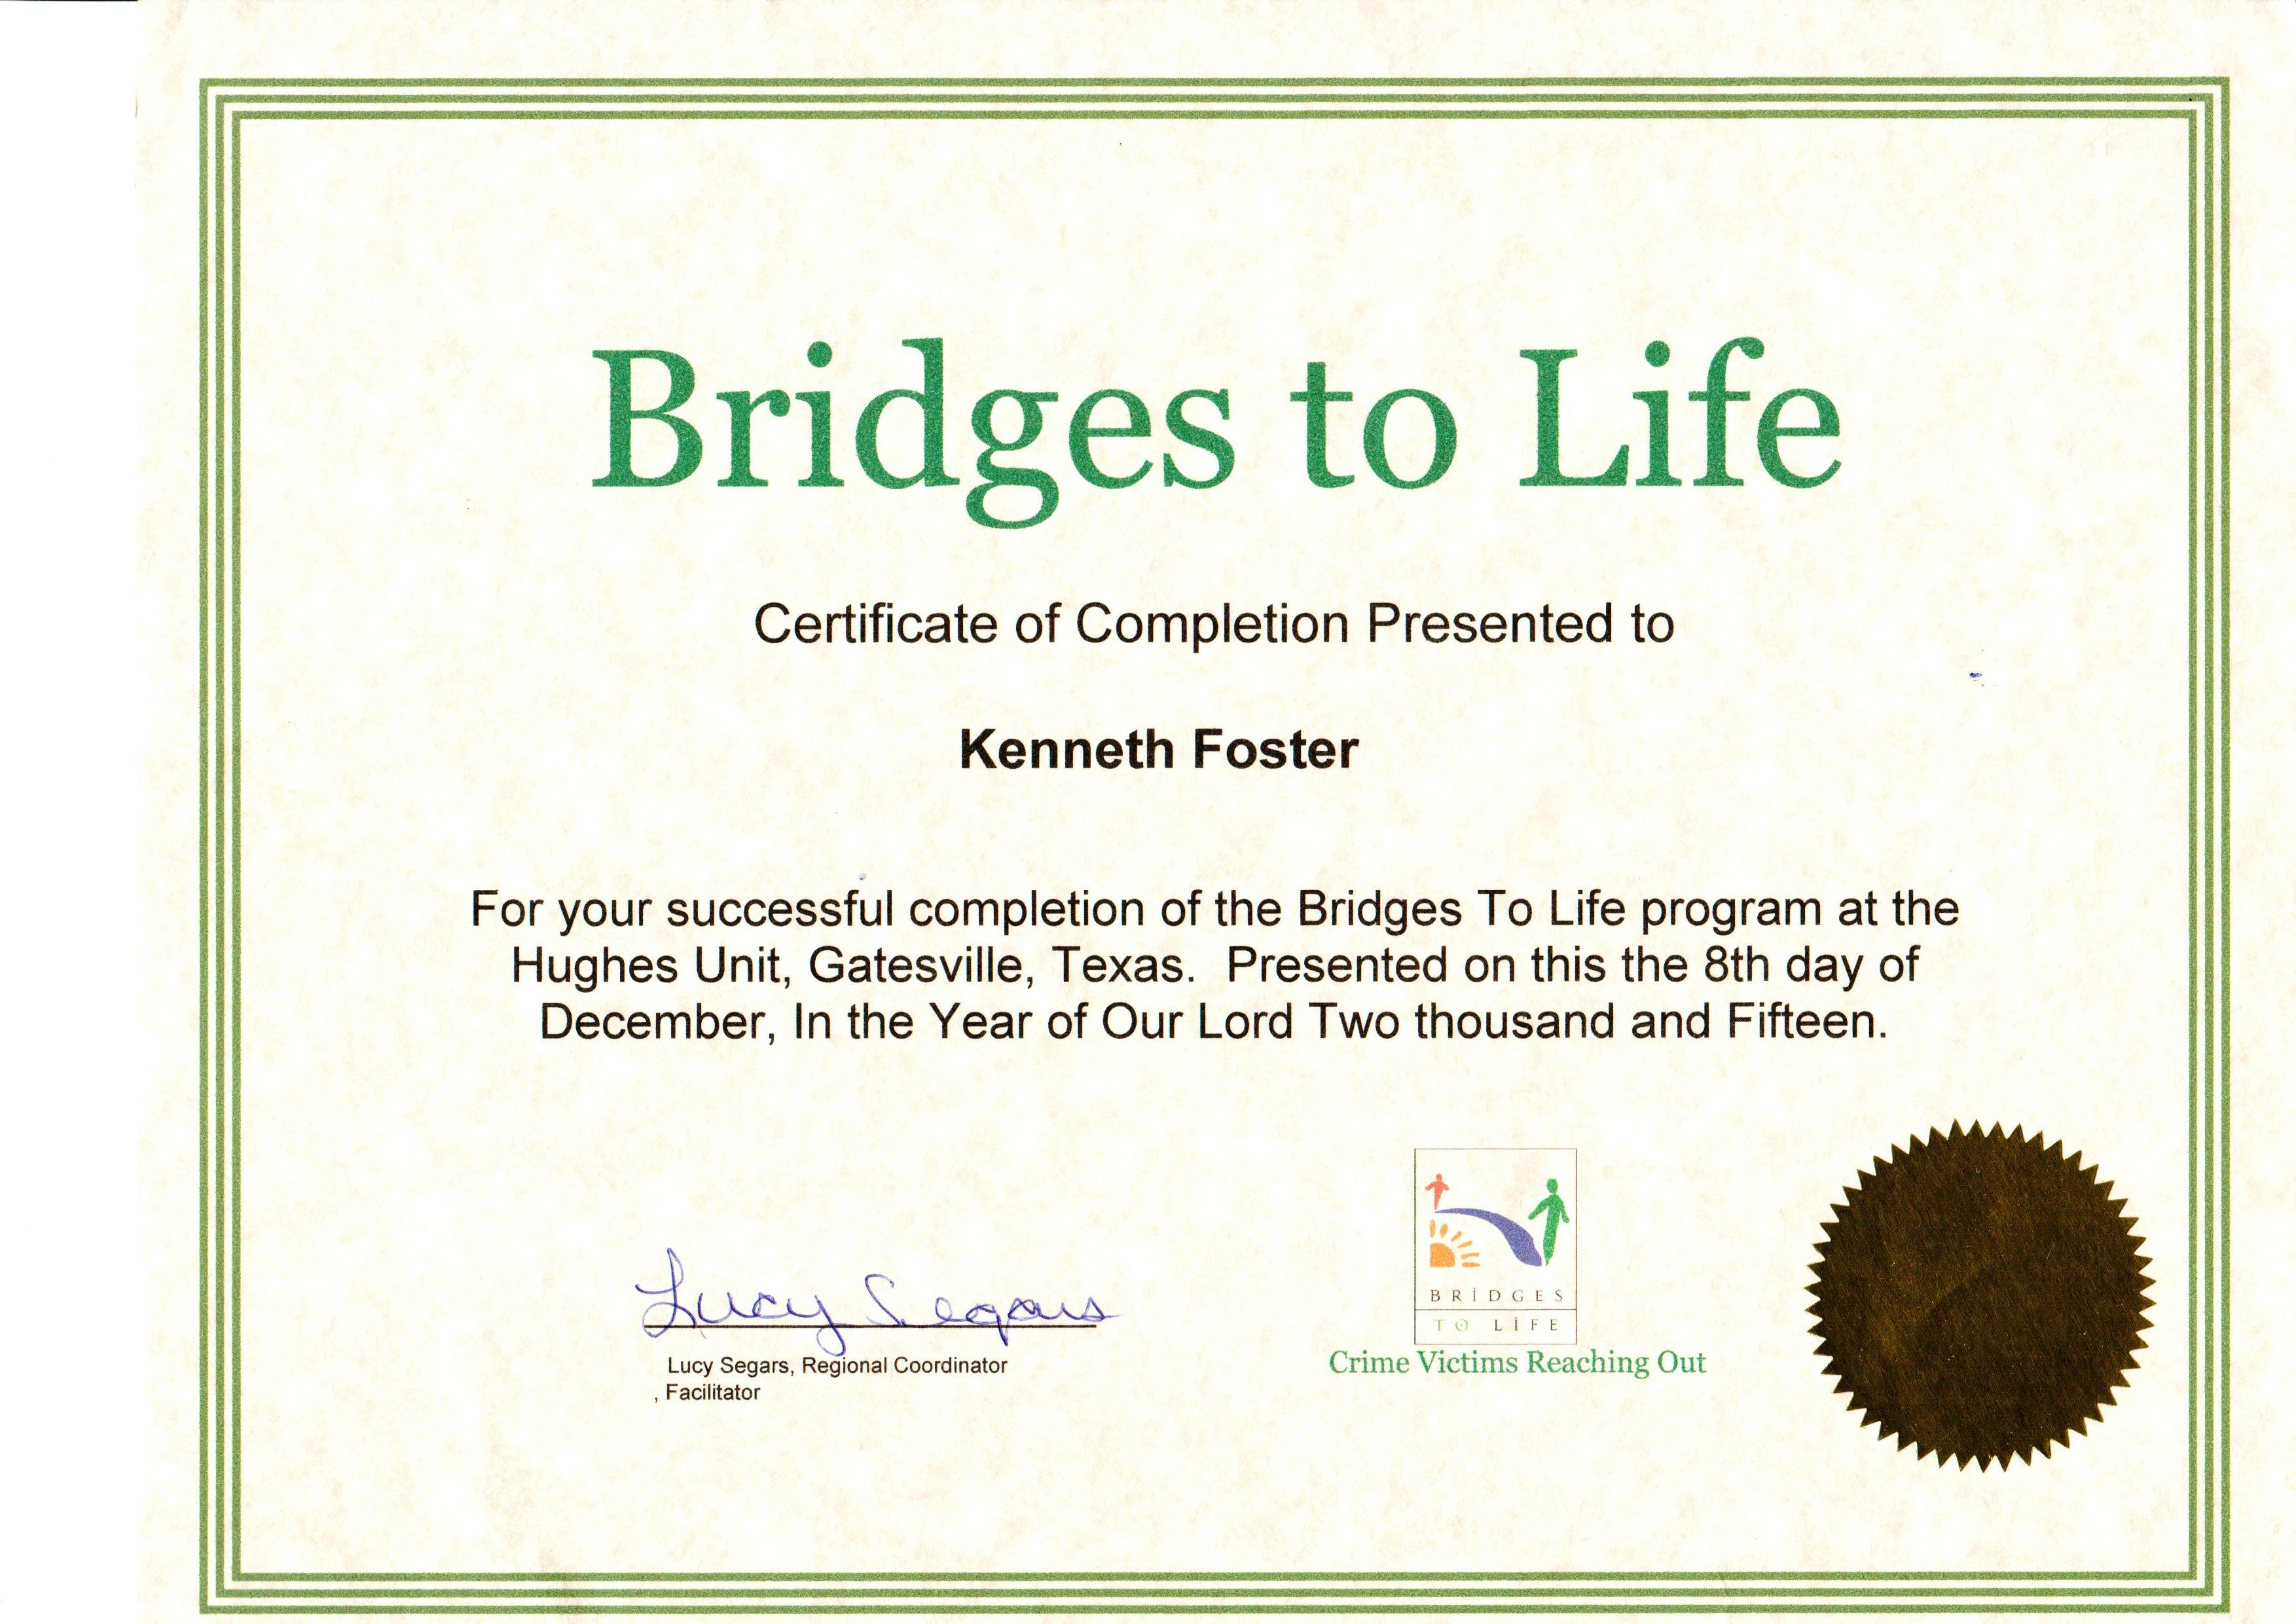 Certificate of Completion Bridges to Life